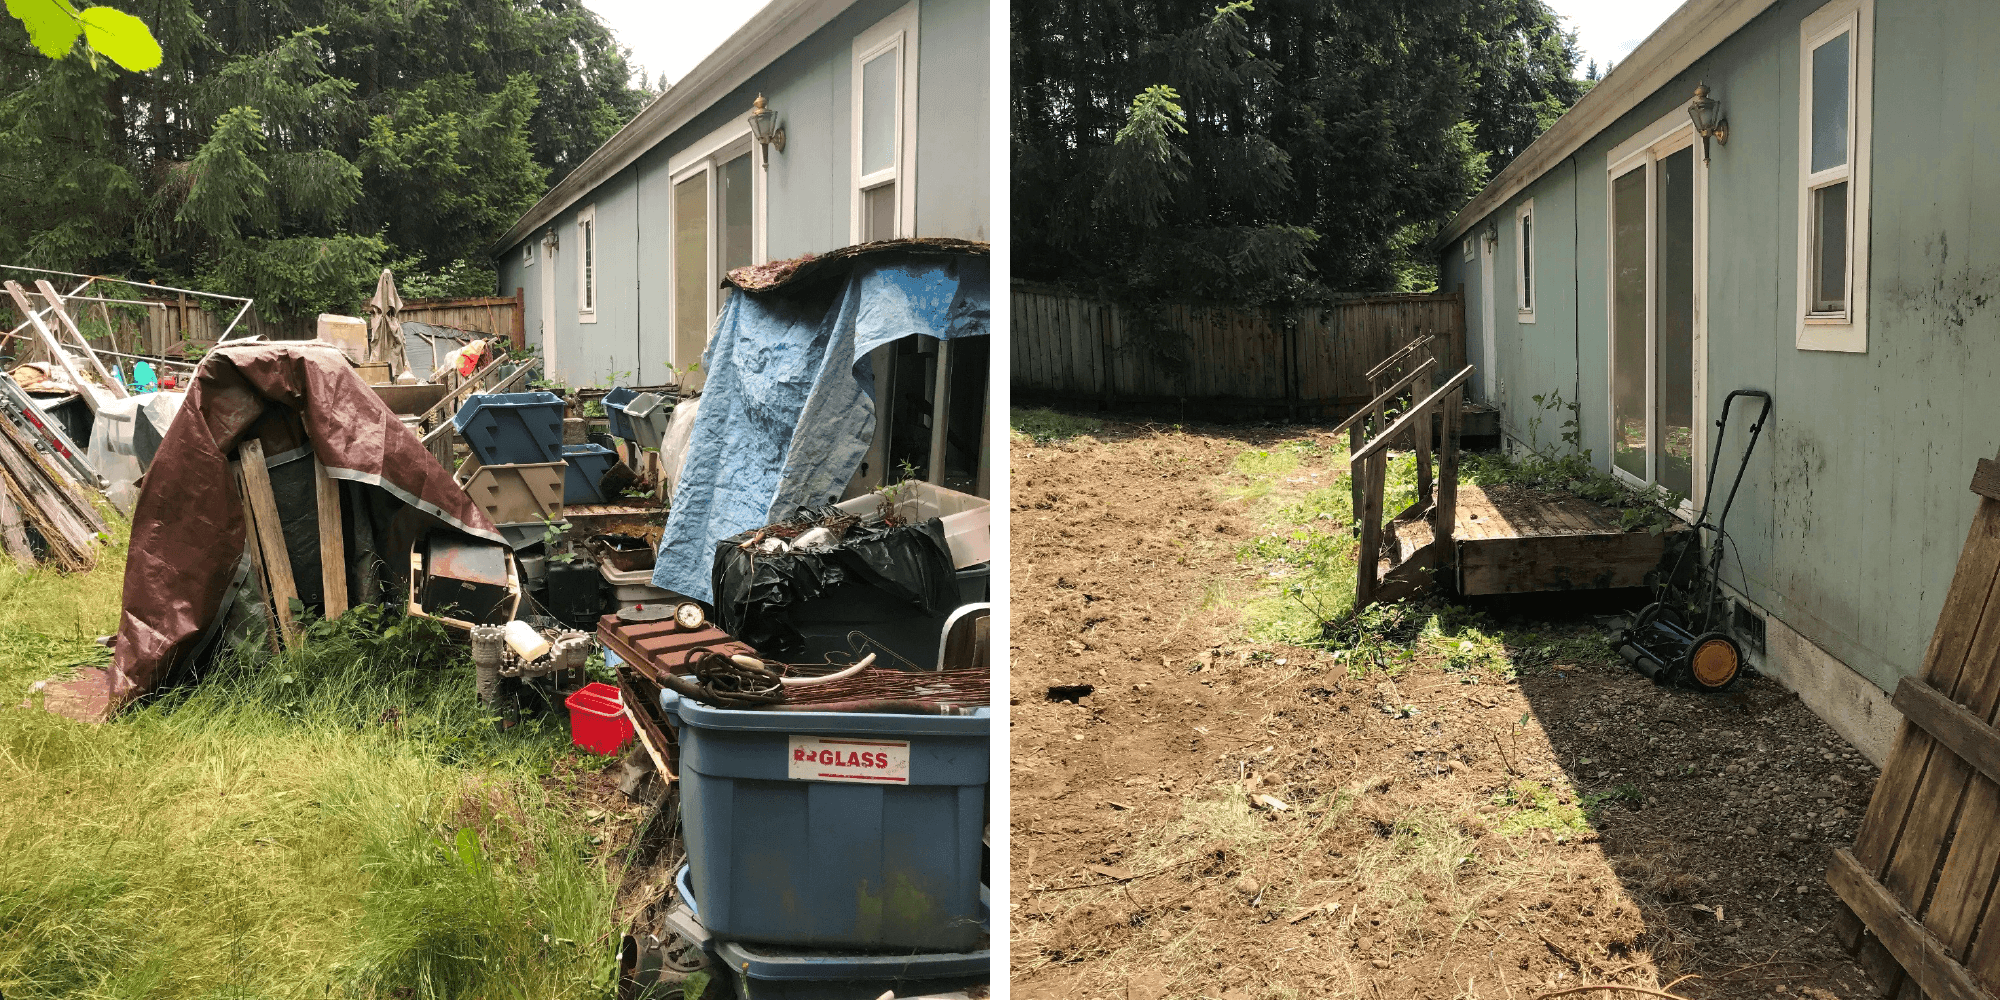 Before and after photo examples of code enforcement abatement